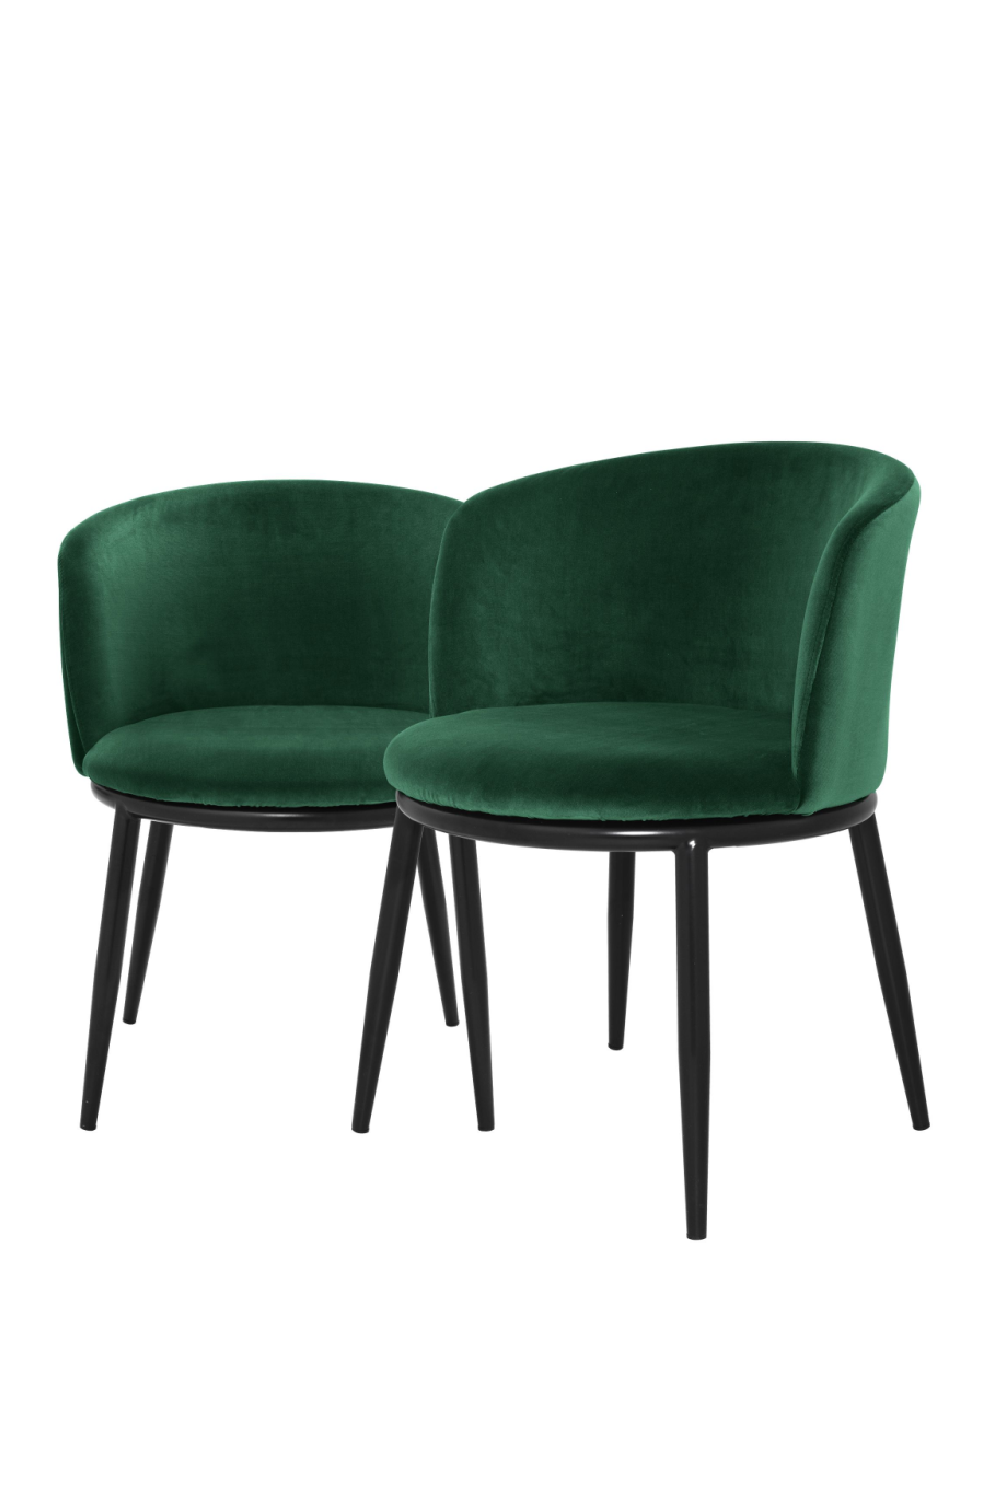 Dark Green Dining Chair Set Of 2 | Eichholtz Filmore